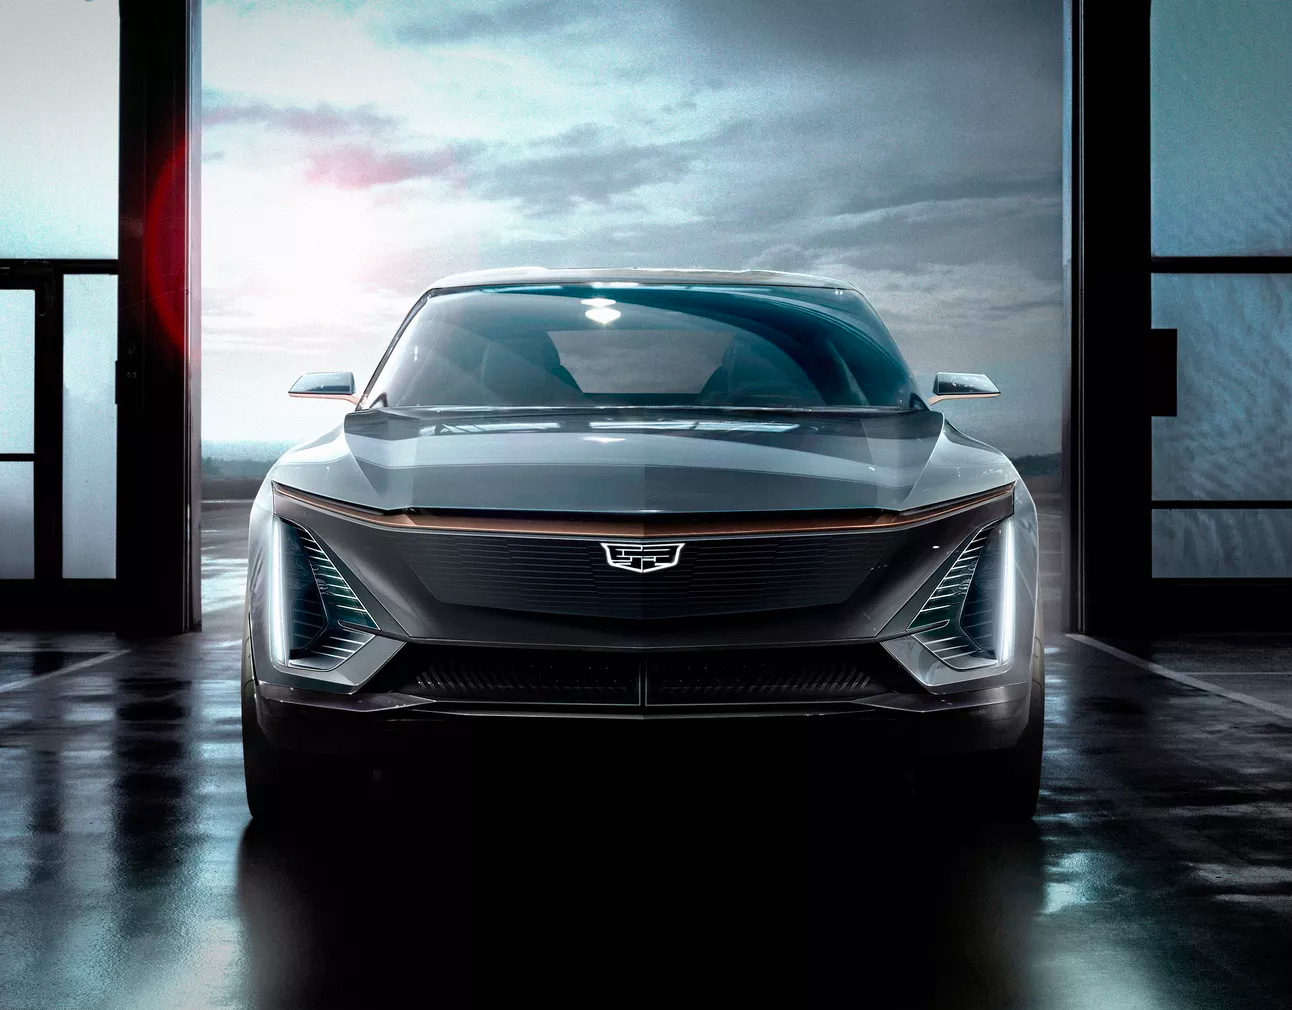 Cadillac is Working On an All-Electric Crossover at werd.com